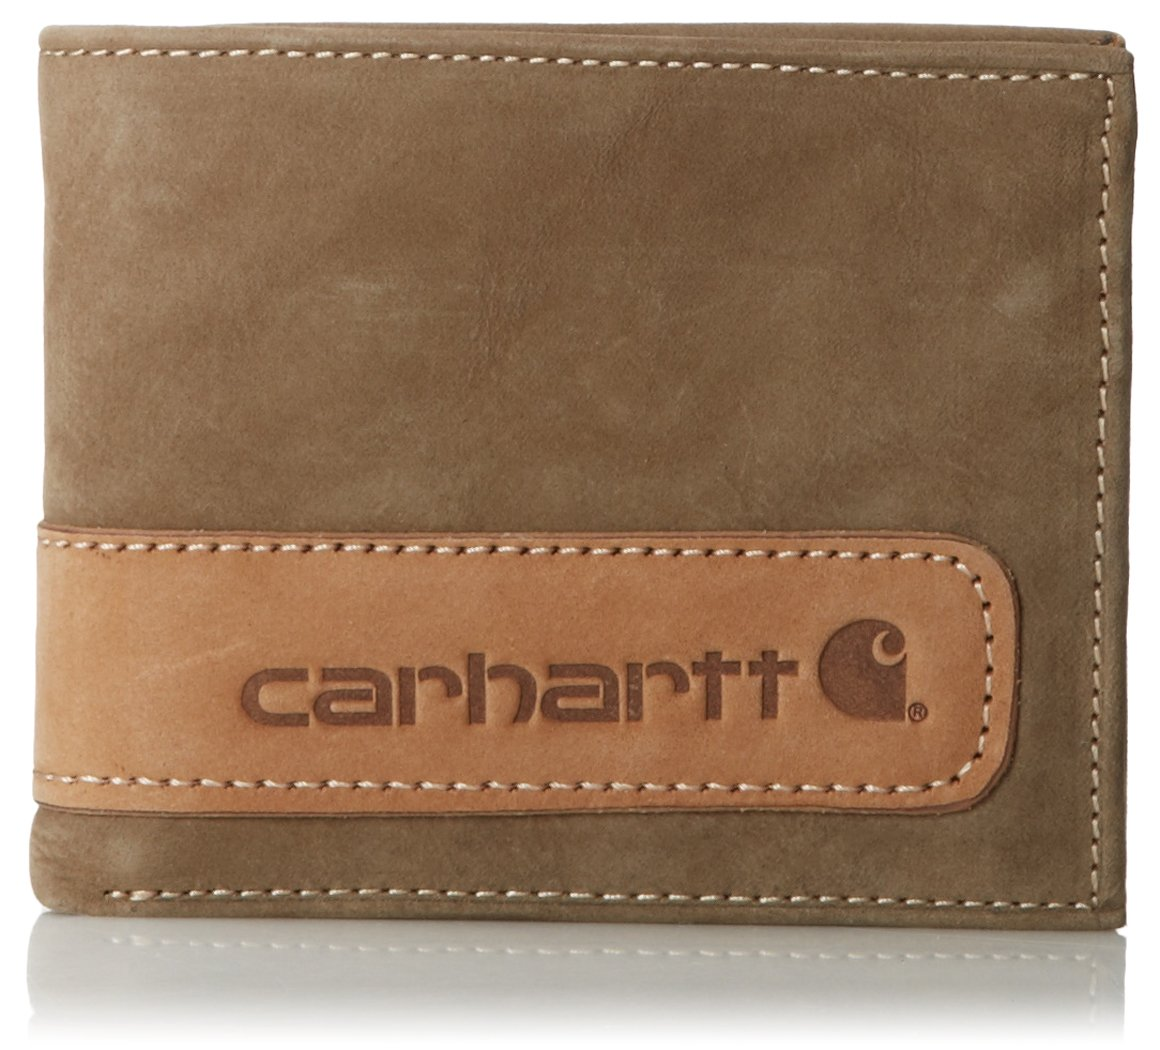 Carhartt Men's Twotone Billfold With Wing,Brown,One Size